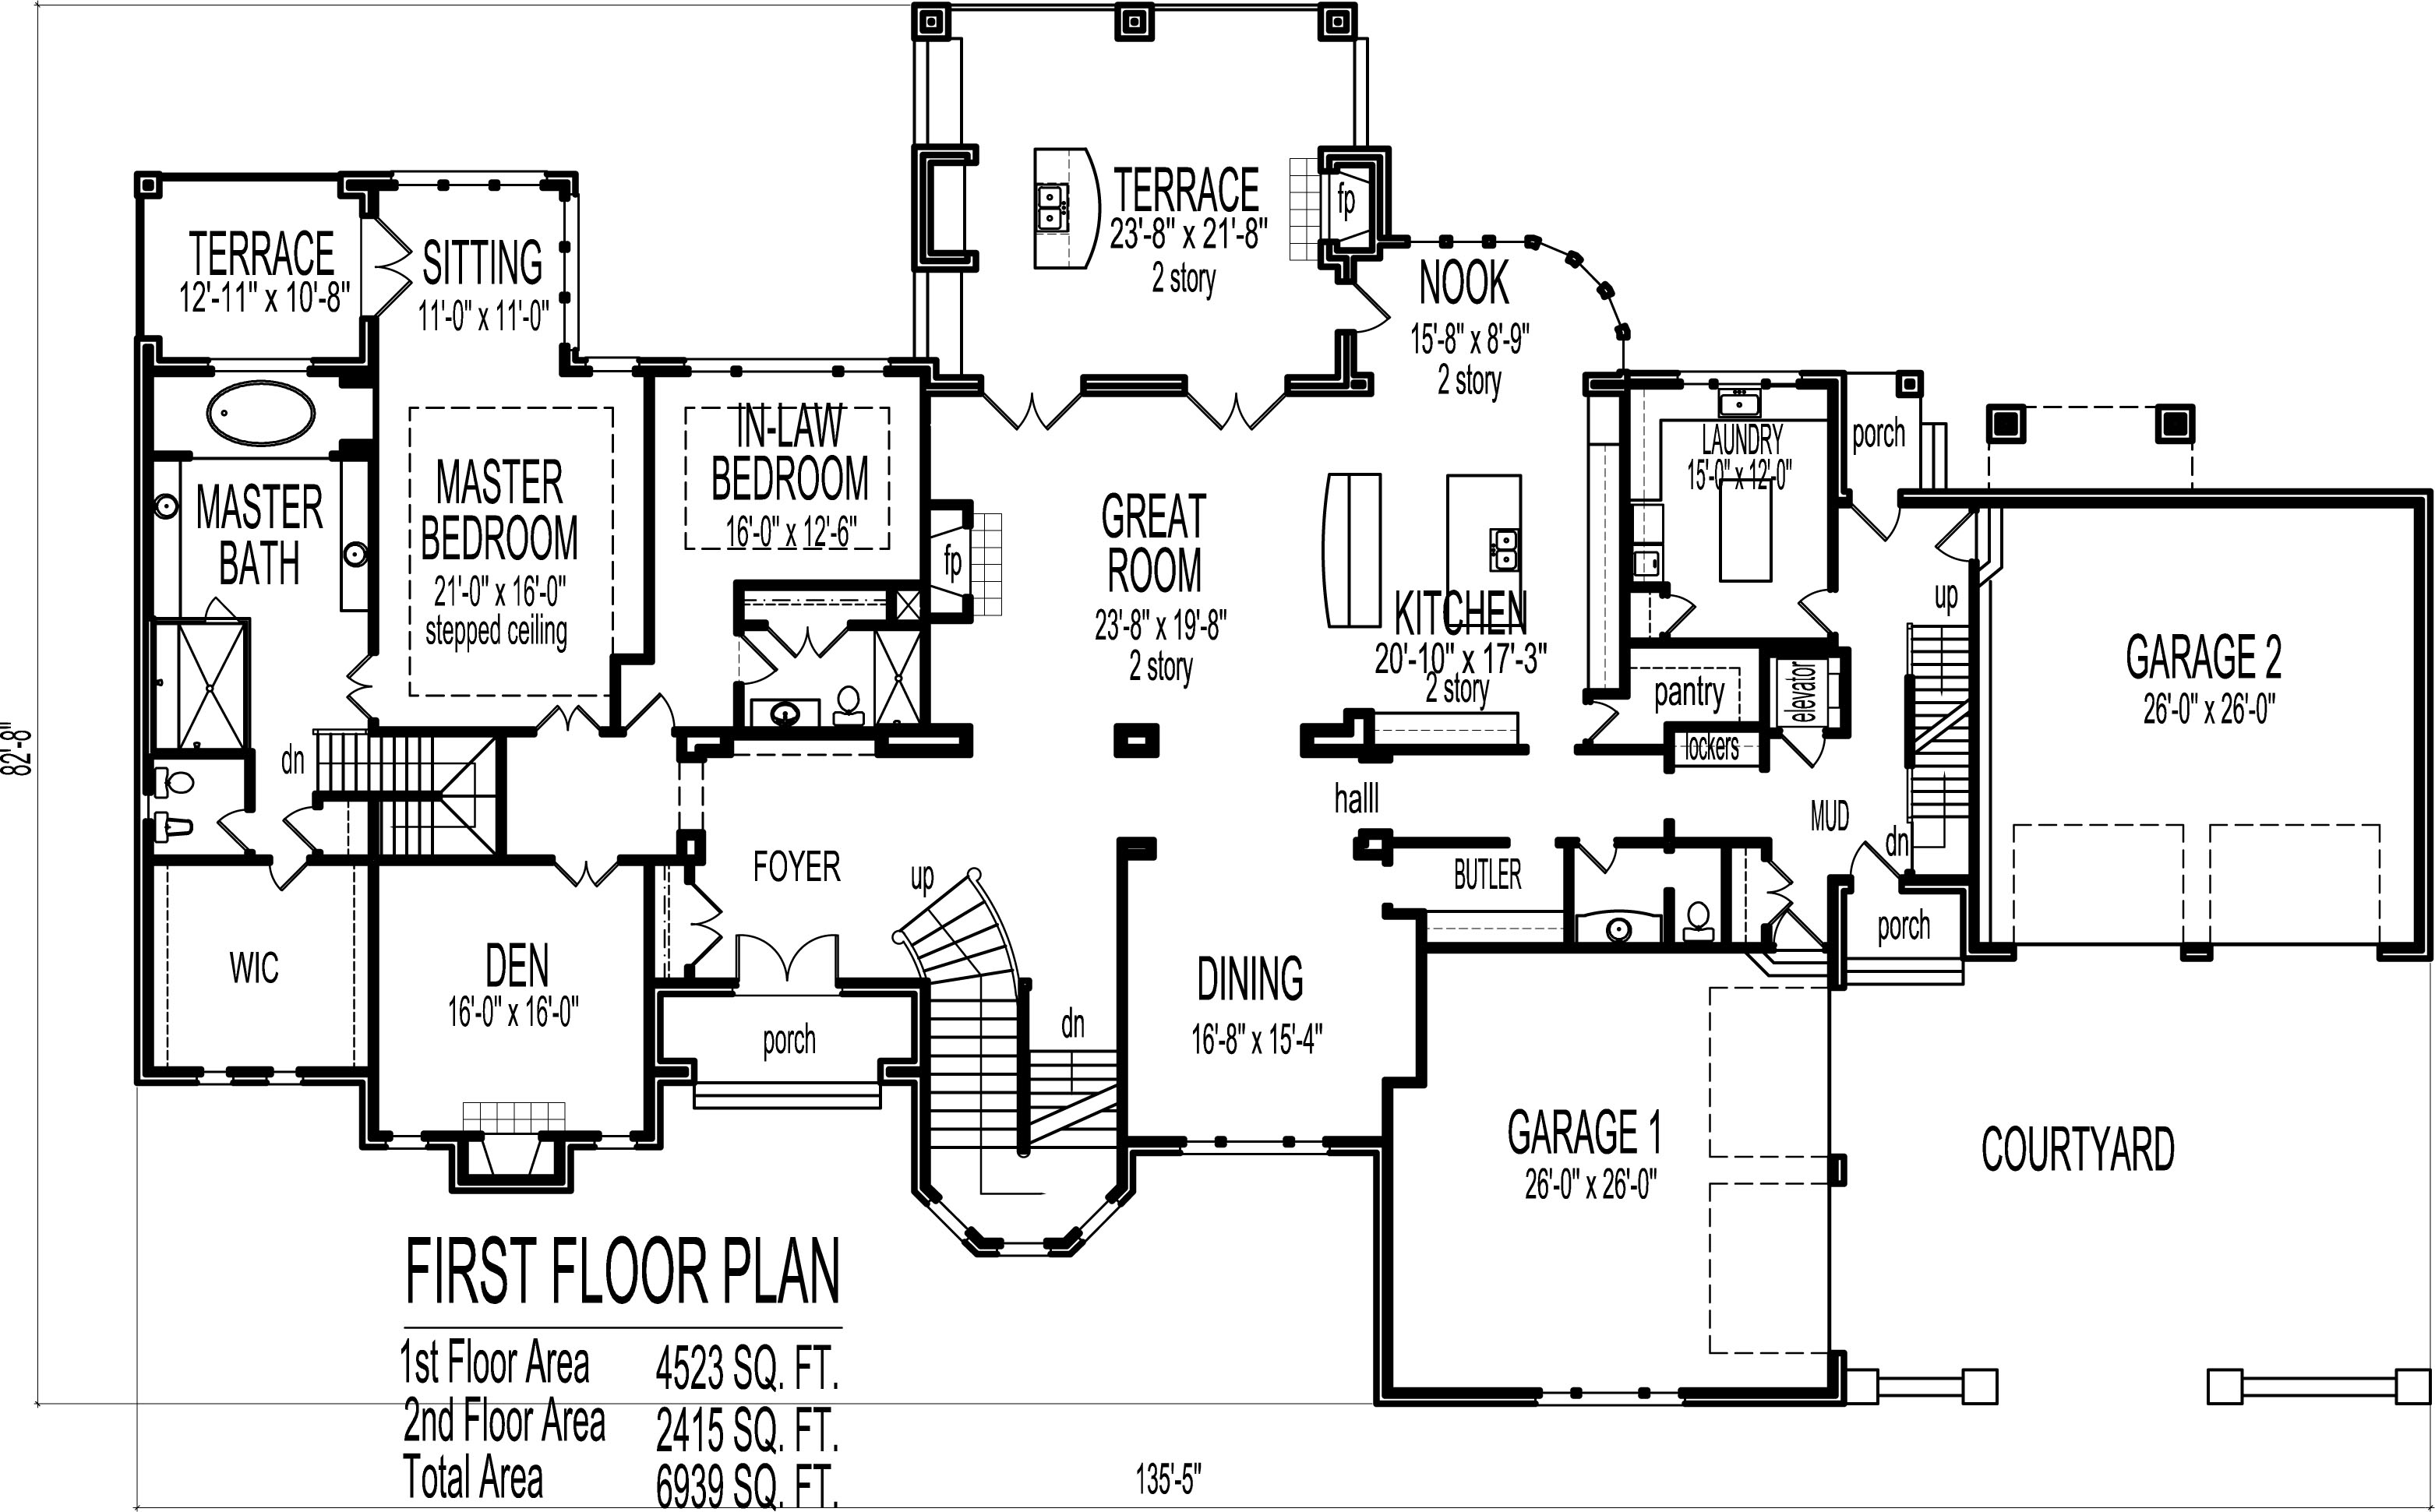 Mansion house floor plans blueprints 6 bedroom 2 story for Dream floor plans